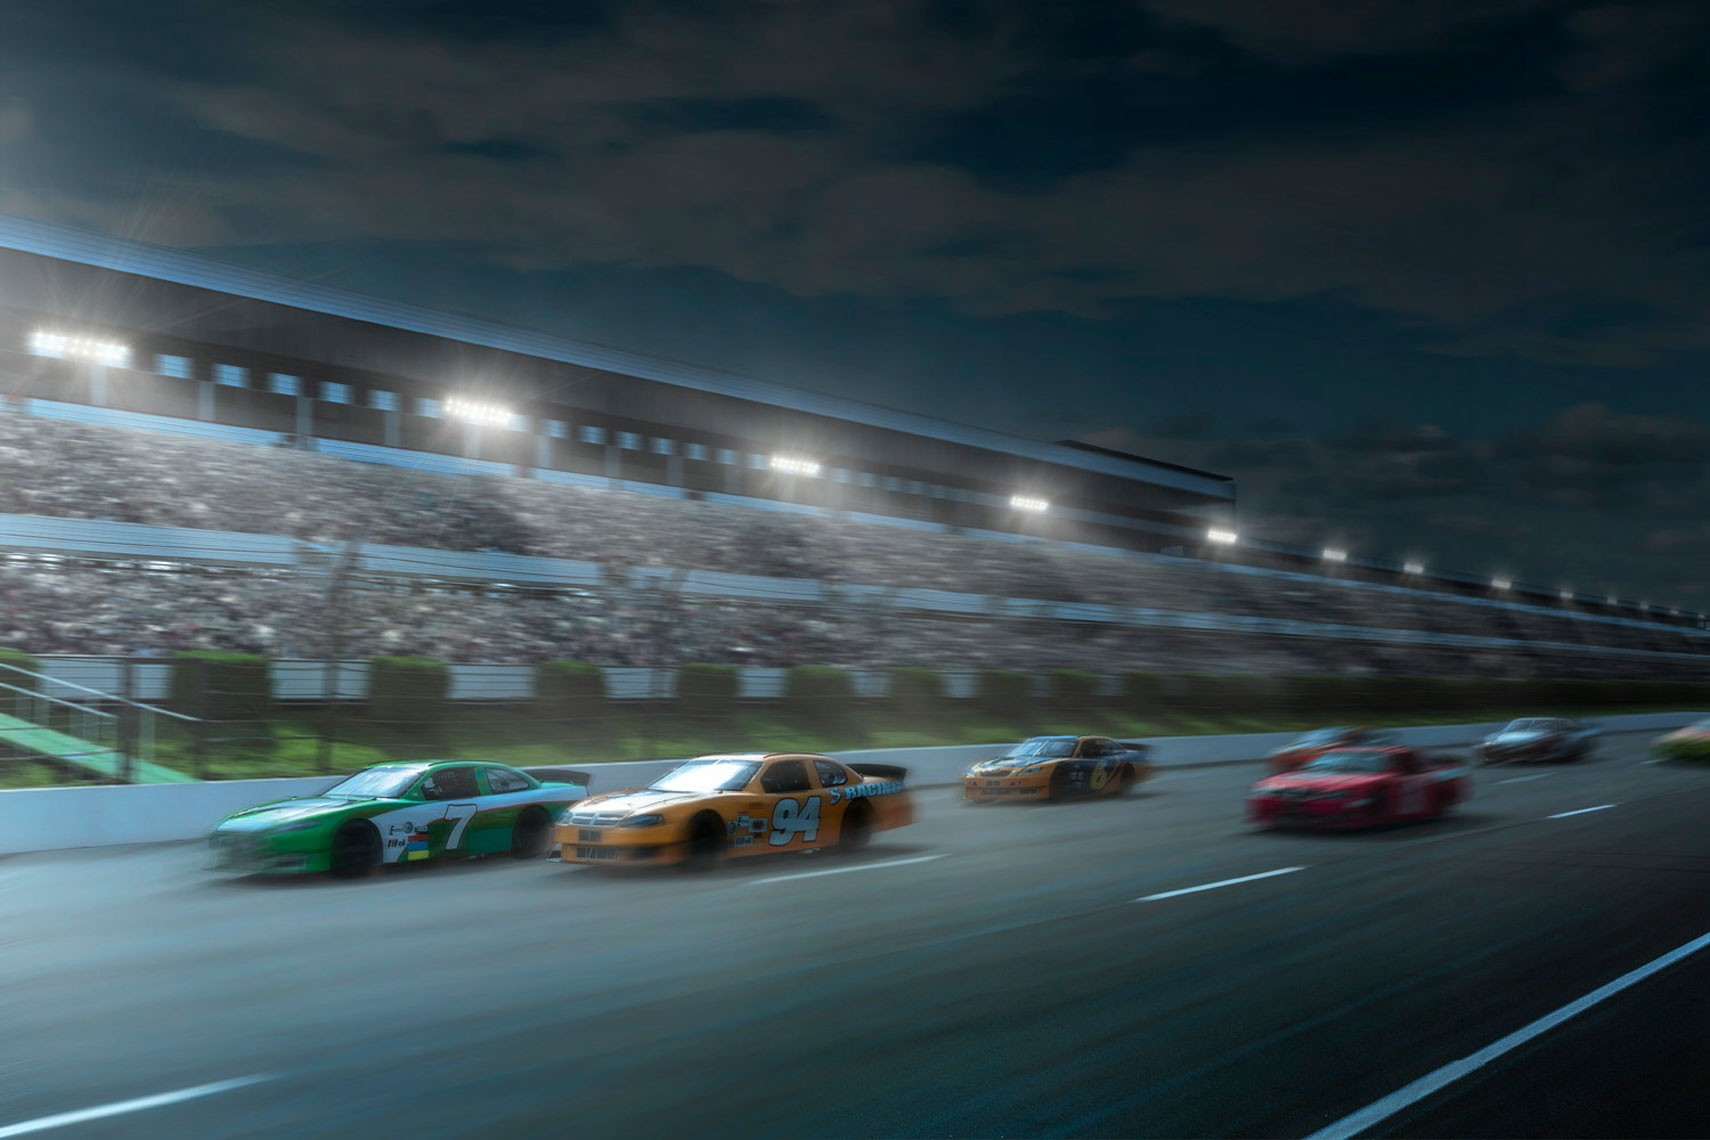 NASCAR Night Racing Scene Composite: CORBIS